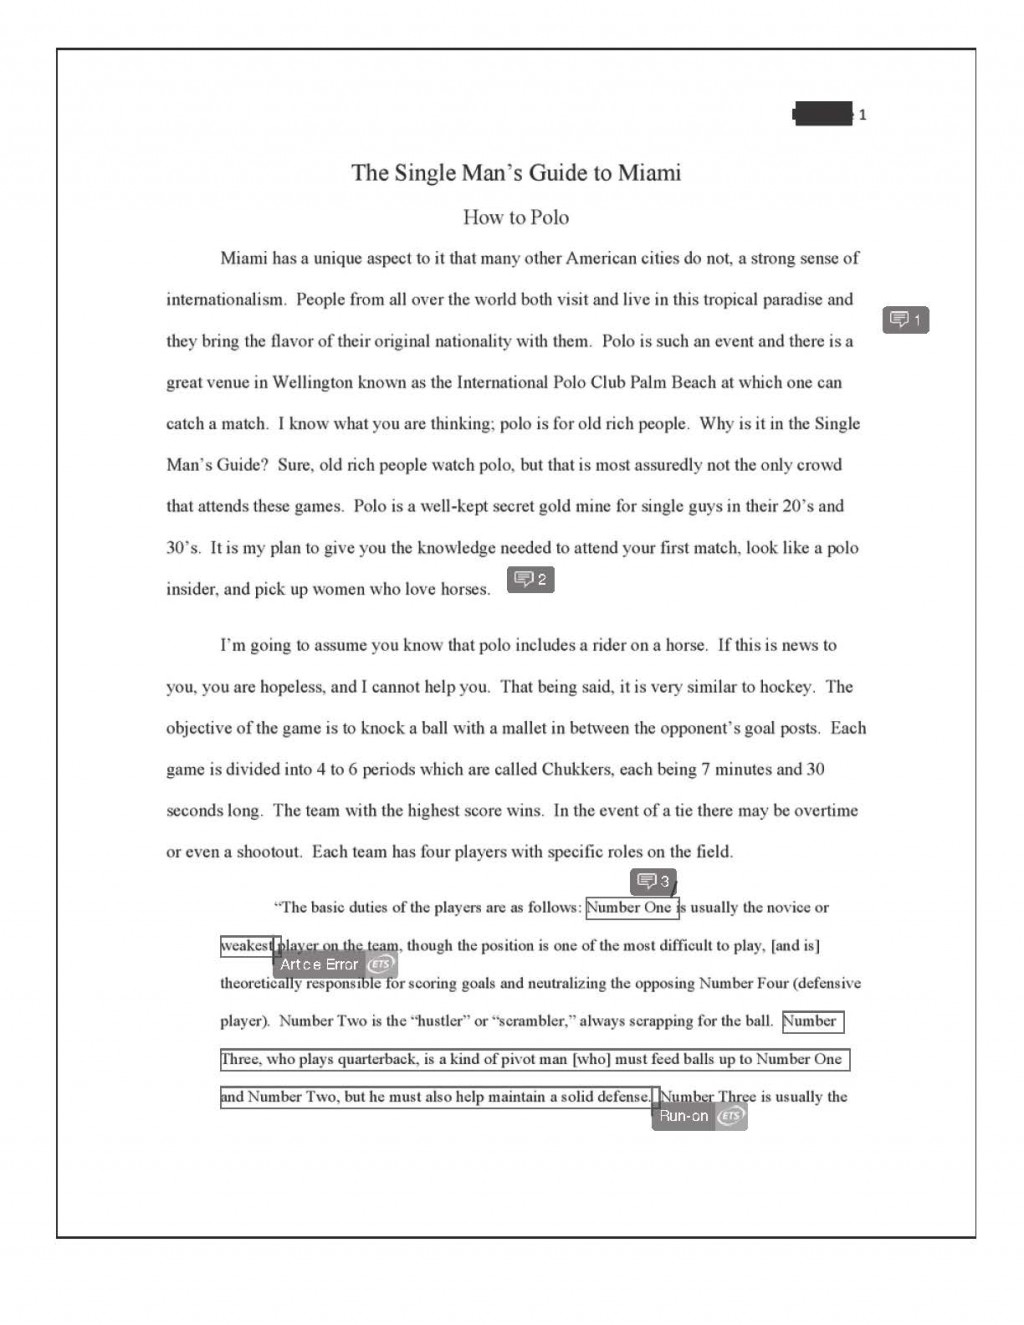 005 Informative Essay Topics Essays Sample Funny Argumentative For Middle School Final How To Polo Redacted P College Students Hilarious Good Remarkable High 4th Grade Expository Large